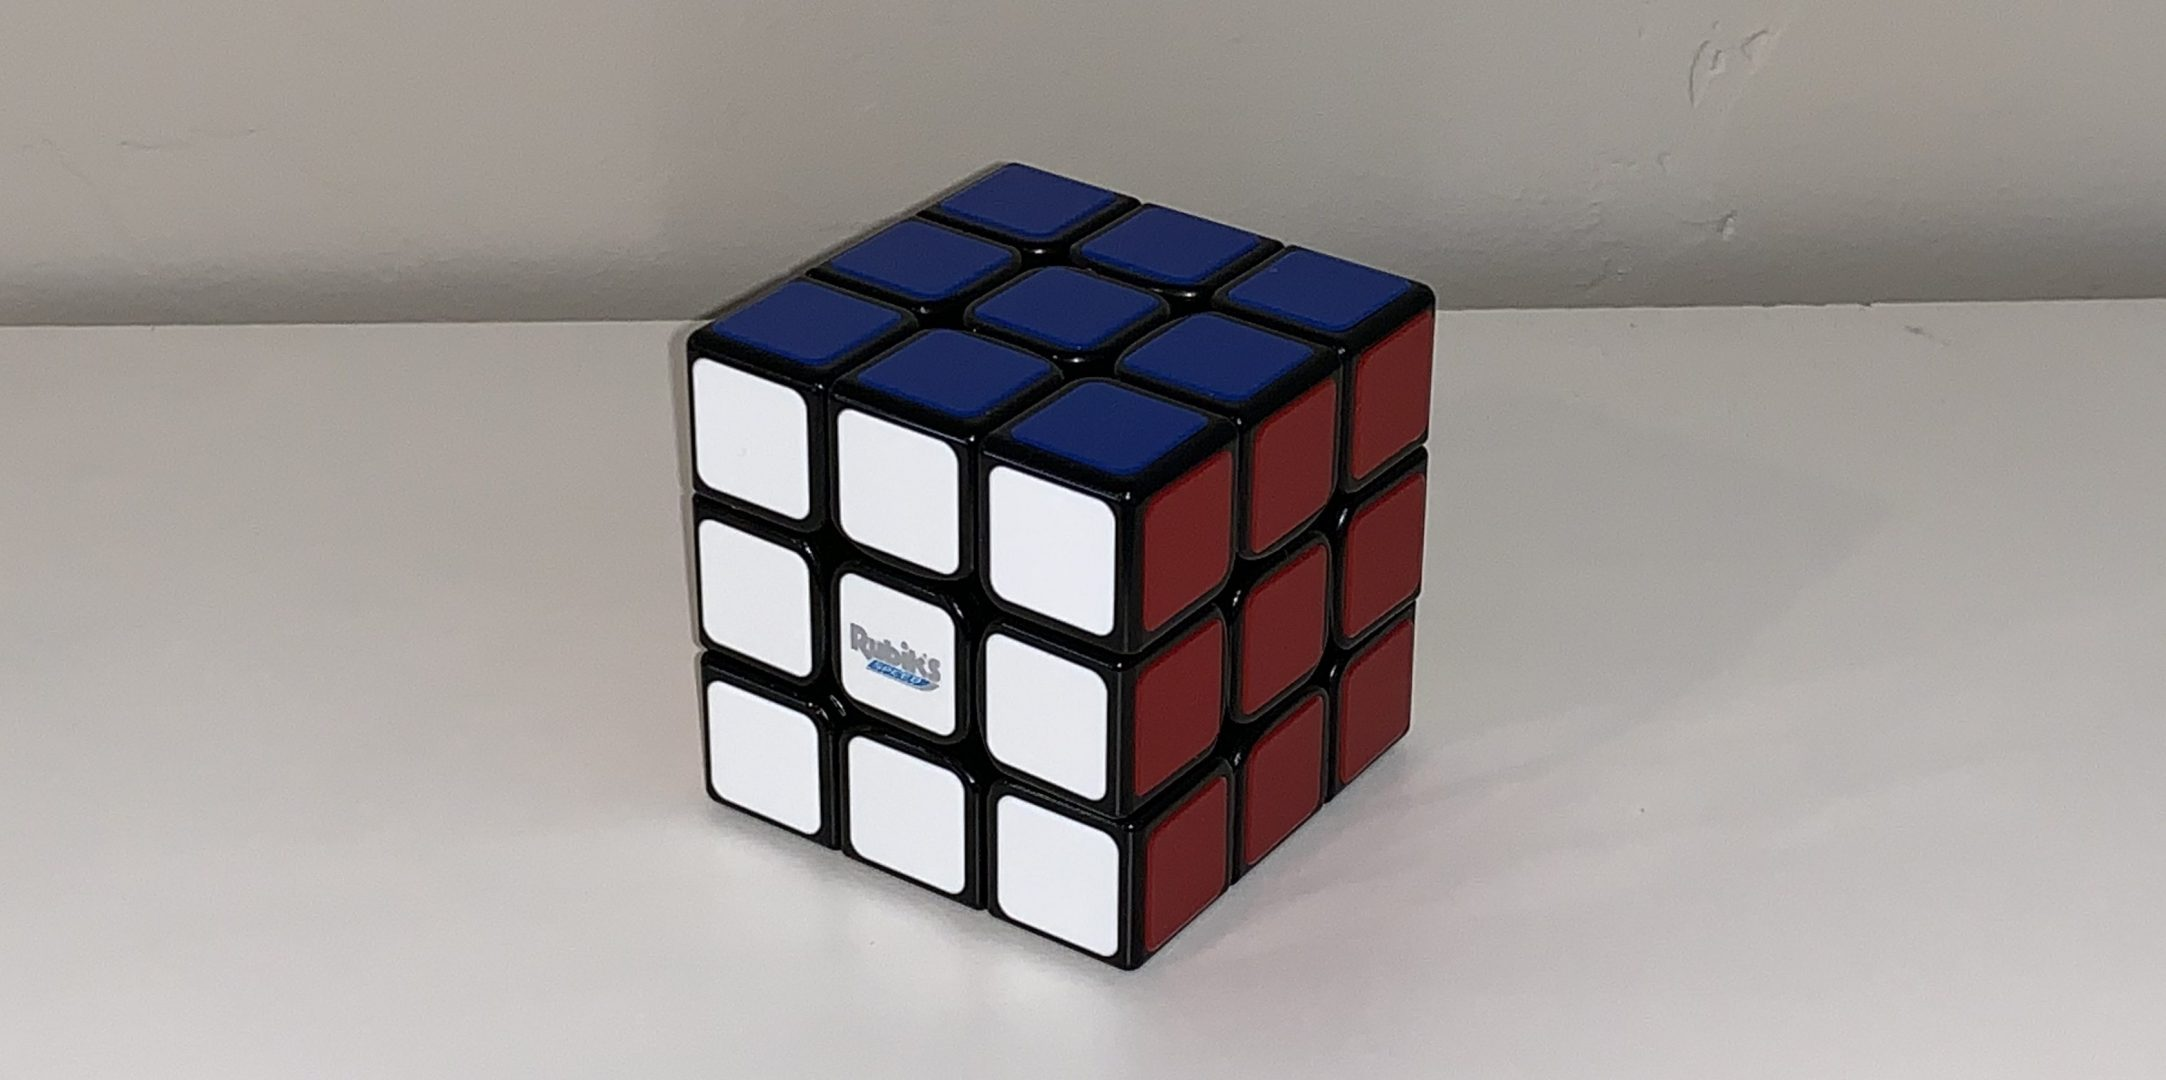 Rubik's speed cube